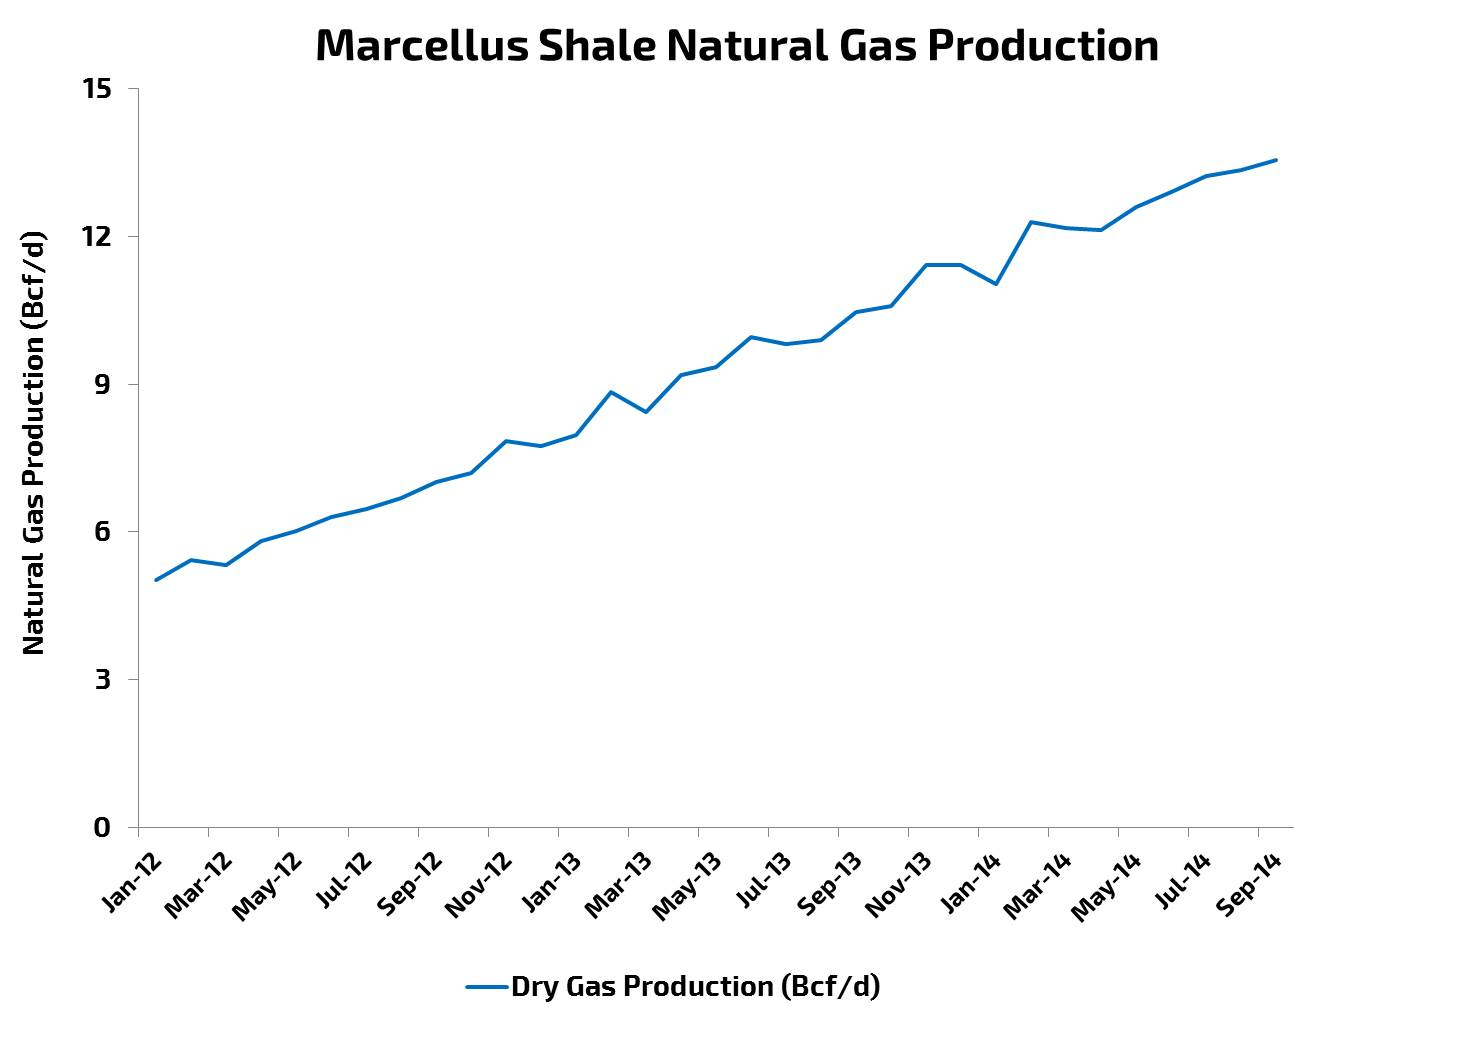 Marcellus Shale Natural Gas Production (January 2012 - October 2014)